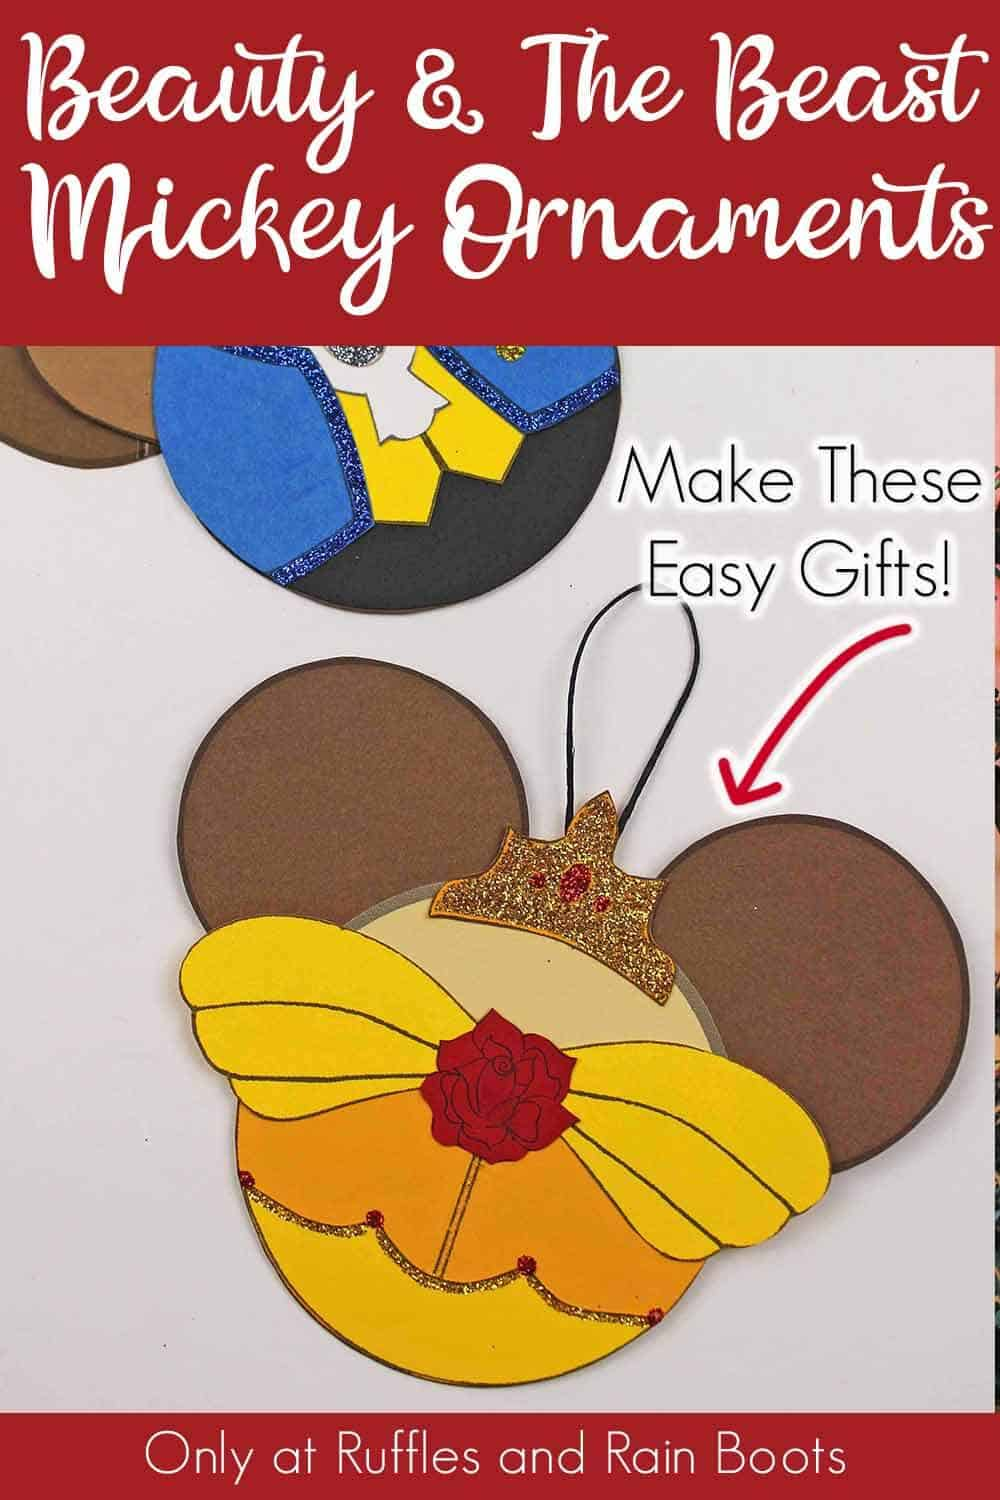 princess belle and beast christmas ornaments on a white backgroundwith text which reads beauty and the beast mickey ornaments make these easy gifts